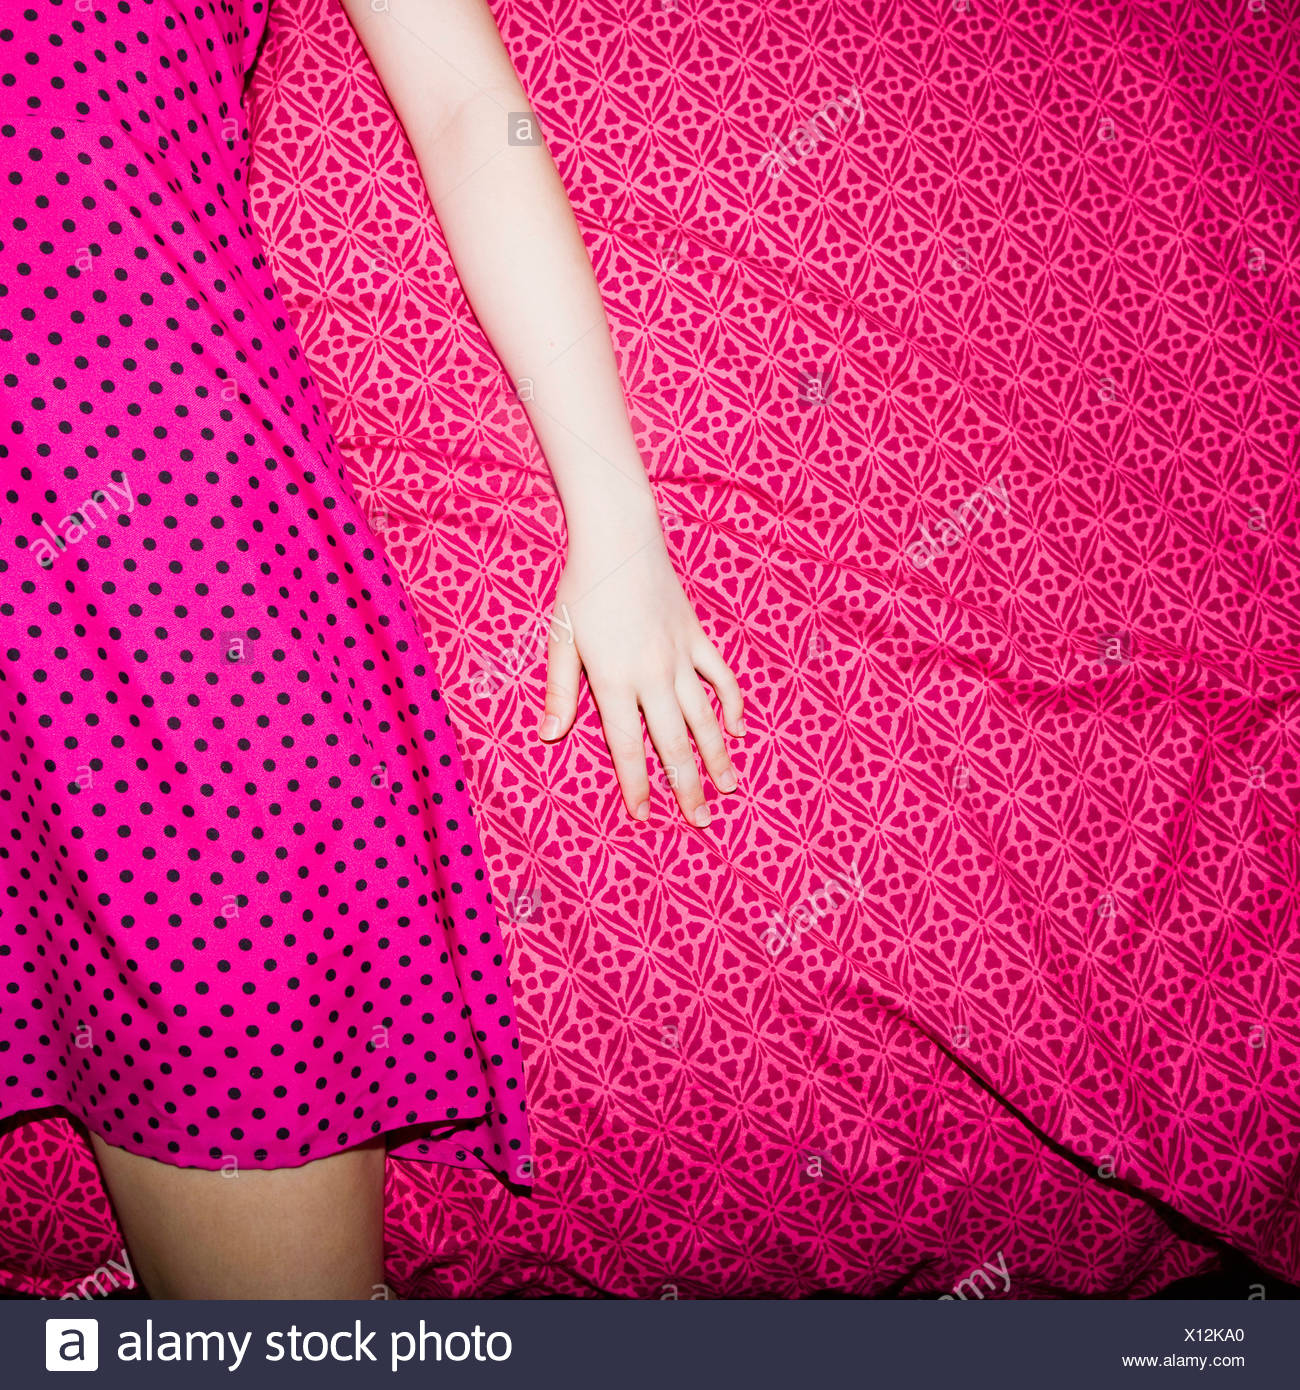 Coloured Dress Imágenes De Stock & Coloured Dress Fotos De Stock - Alamy